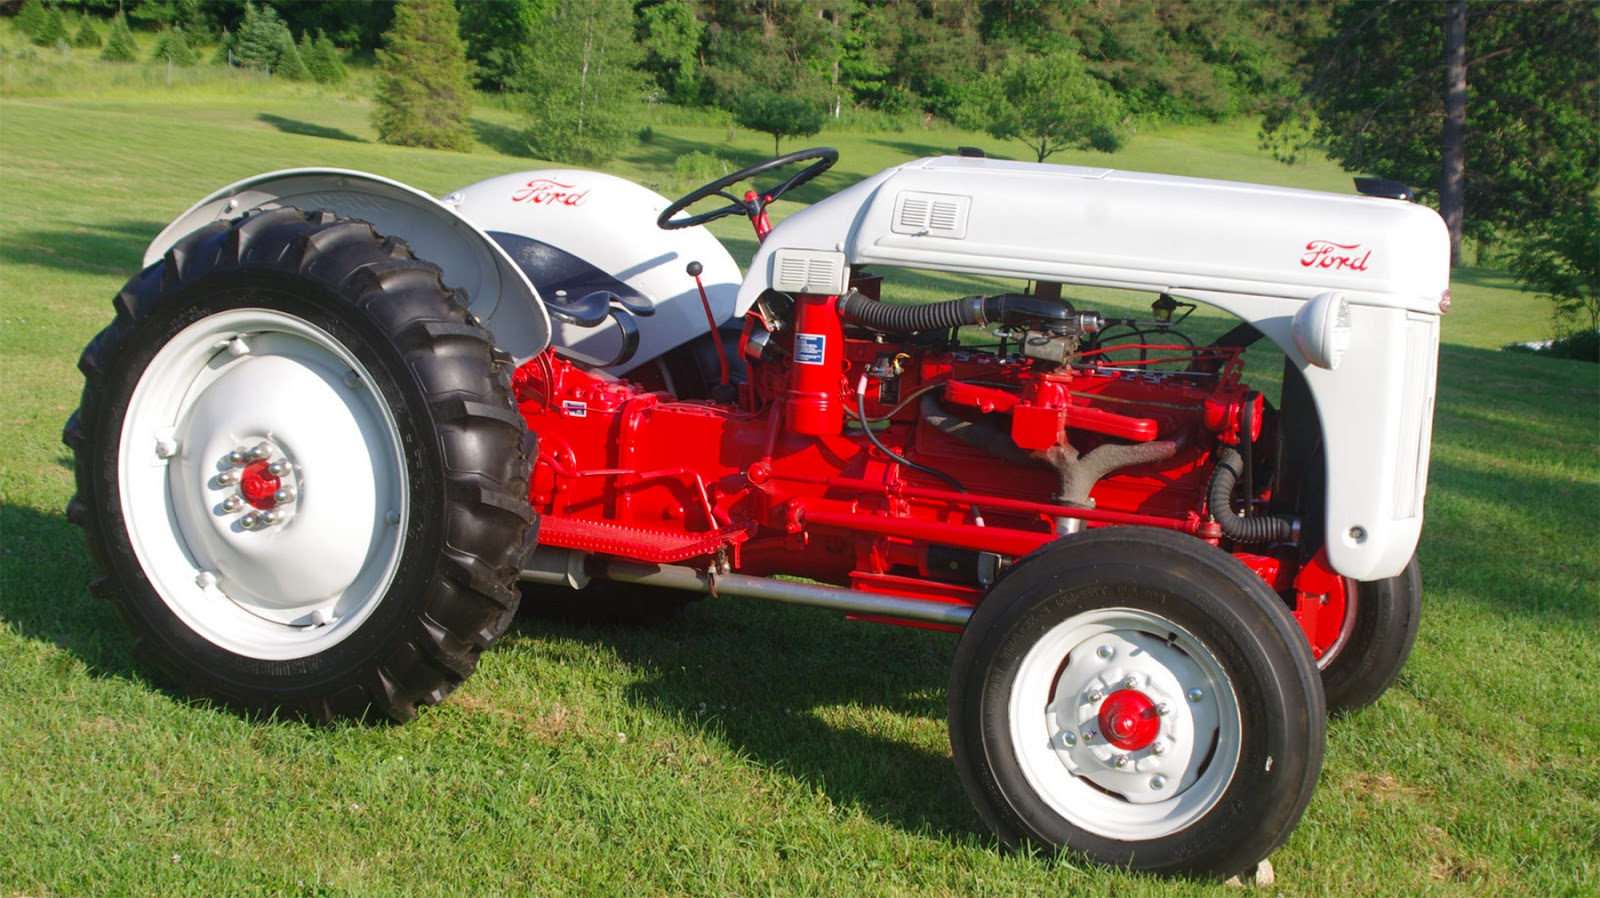 Garage Tech With Randy Rundle 2018 1950 8n Ford Tractor Wiring Diagram 6 Volt Besides 12 In 1948 Owners Were Looking For More Horsepower A Standard Was 30 And Could Pull Only Two Bottom Plow